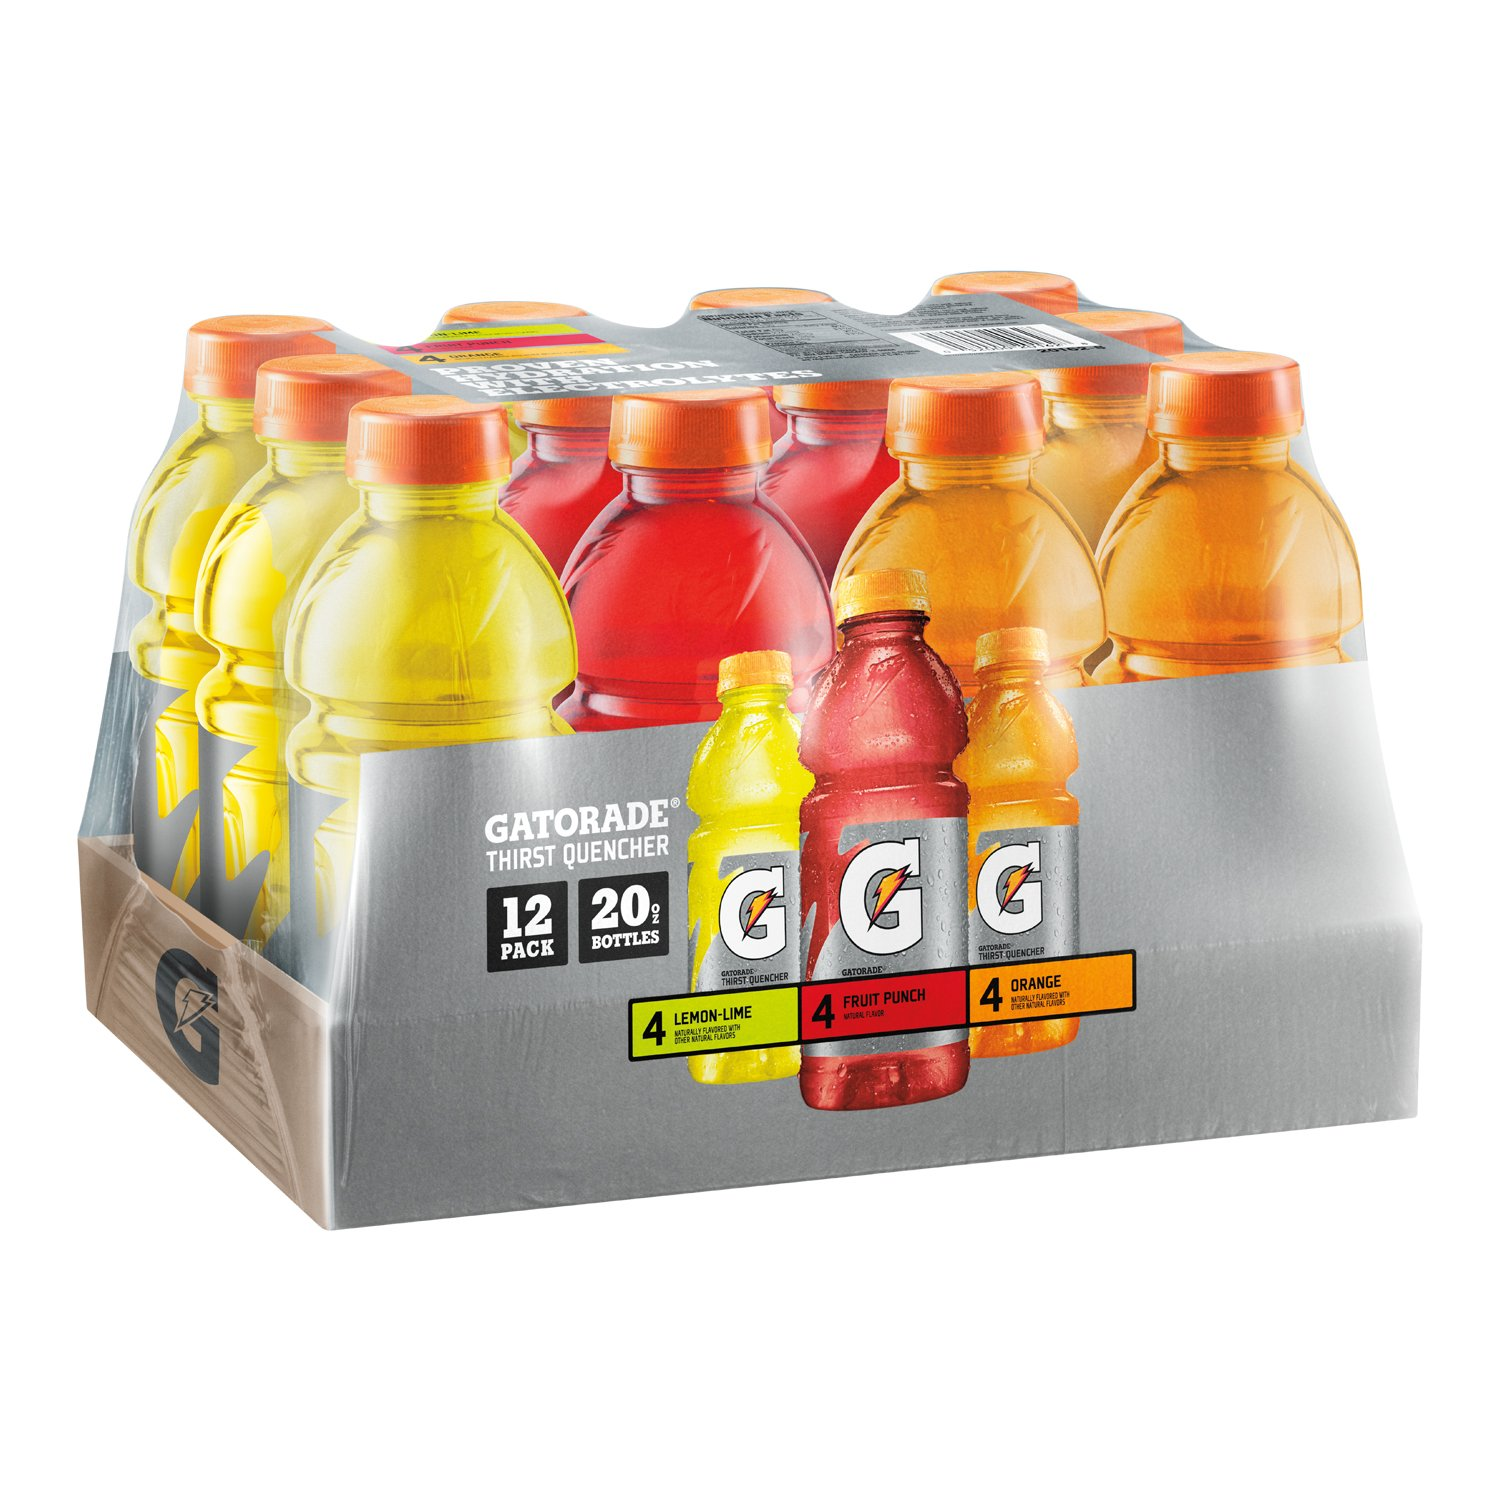 Amazon.com : Gatorade Original Thirst Quencher Variety Pack, 20 Ounce  Bottles (Pack of 12) : Grocery & Gourmet Food